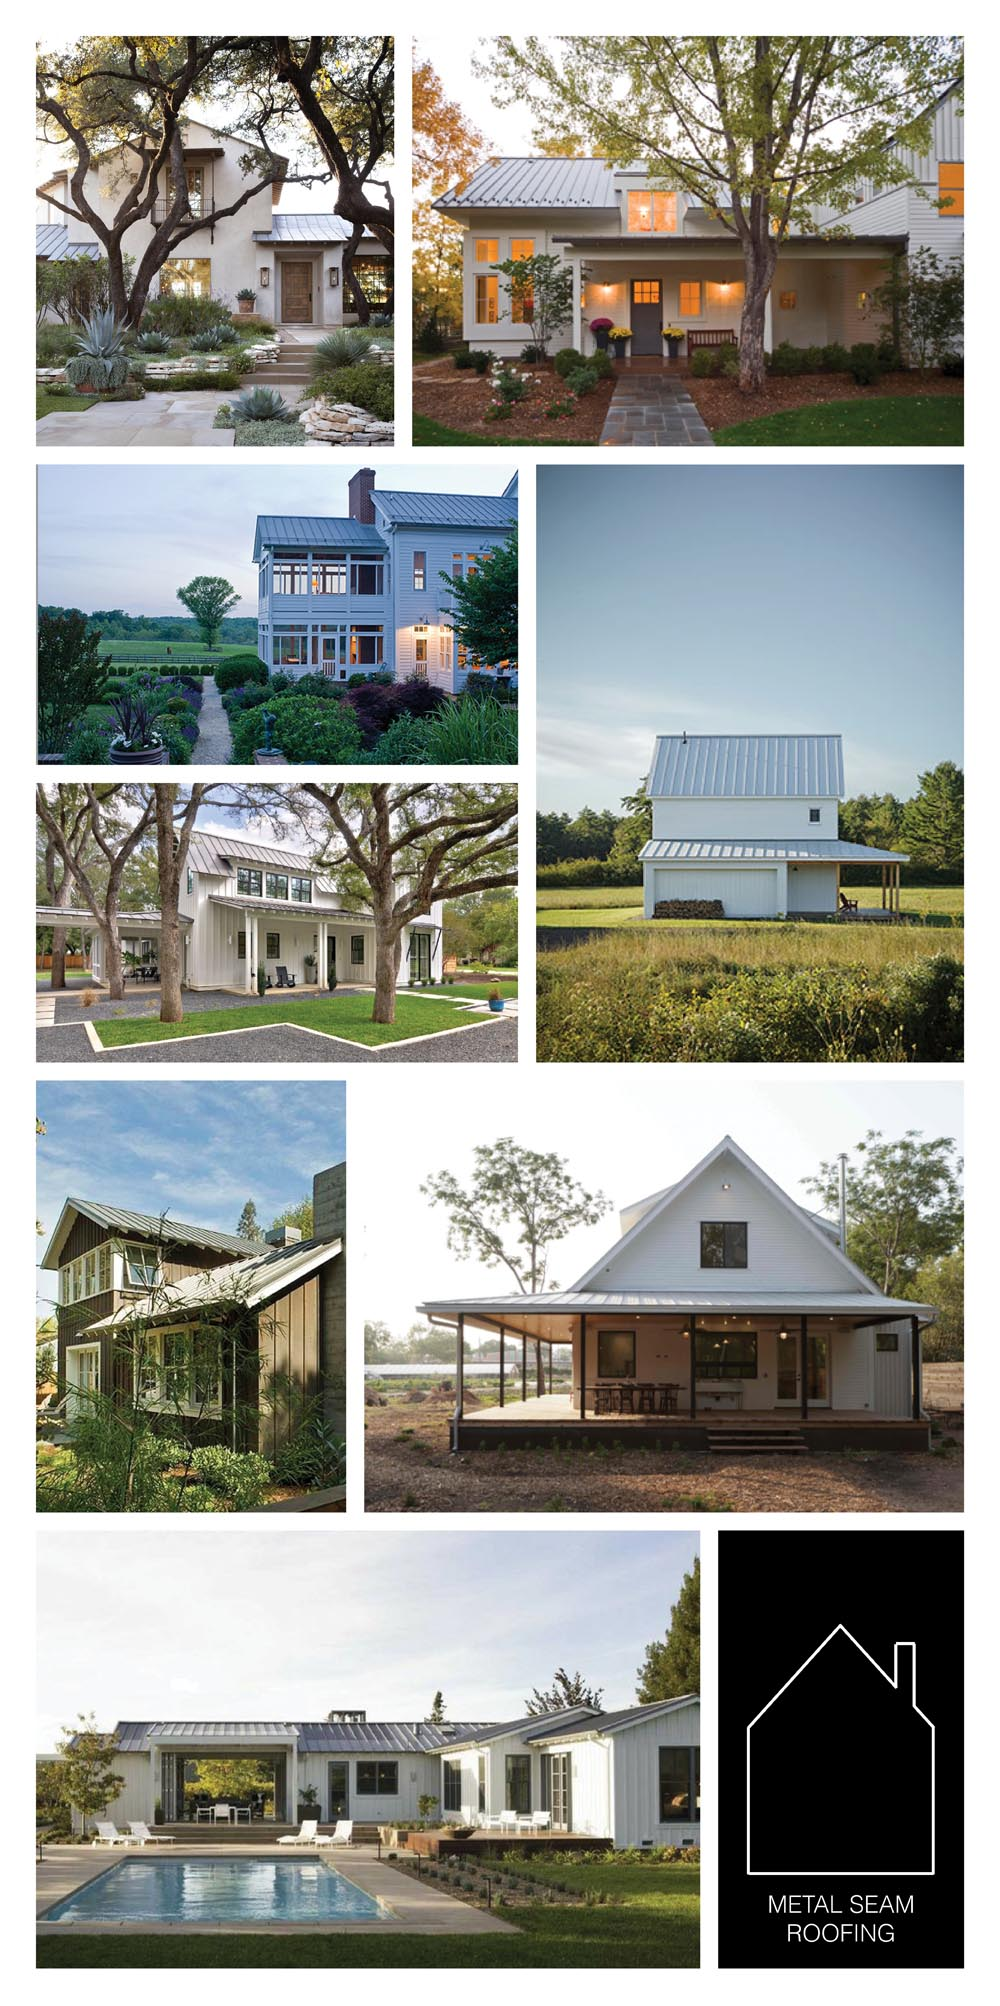 from top left -   richard lane  home by  Ryan Street & Associates  -  cherry hills village residence  by  Blue Line Architects  - Maryland home by Faith Nevins Hawk via  Roger Foley  -  GO LOGIC  home - modern farmhouse by  redbud custom homes  -  Felton Gables residence  by  Arcanum Architecture, Inc.  -  Springdale farmhouse  by  Rauser Architecture + Design  - California ranch vis source unknown